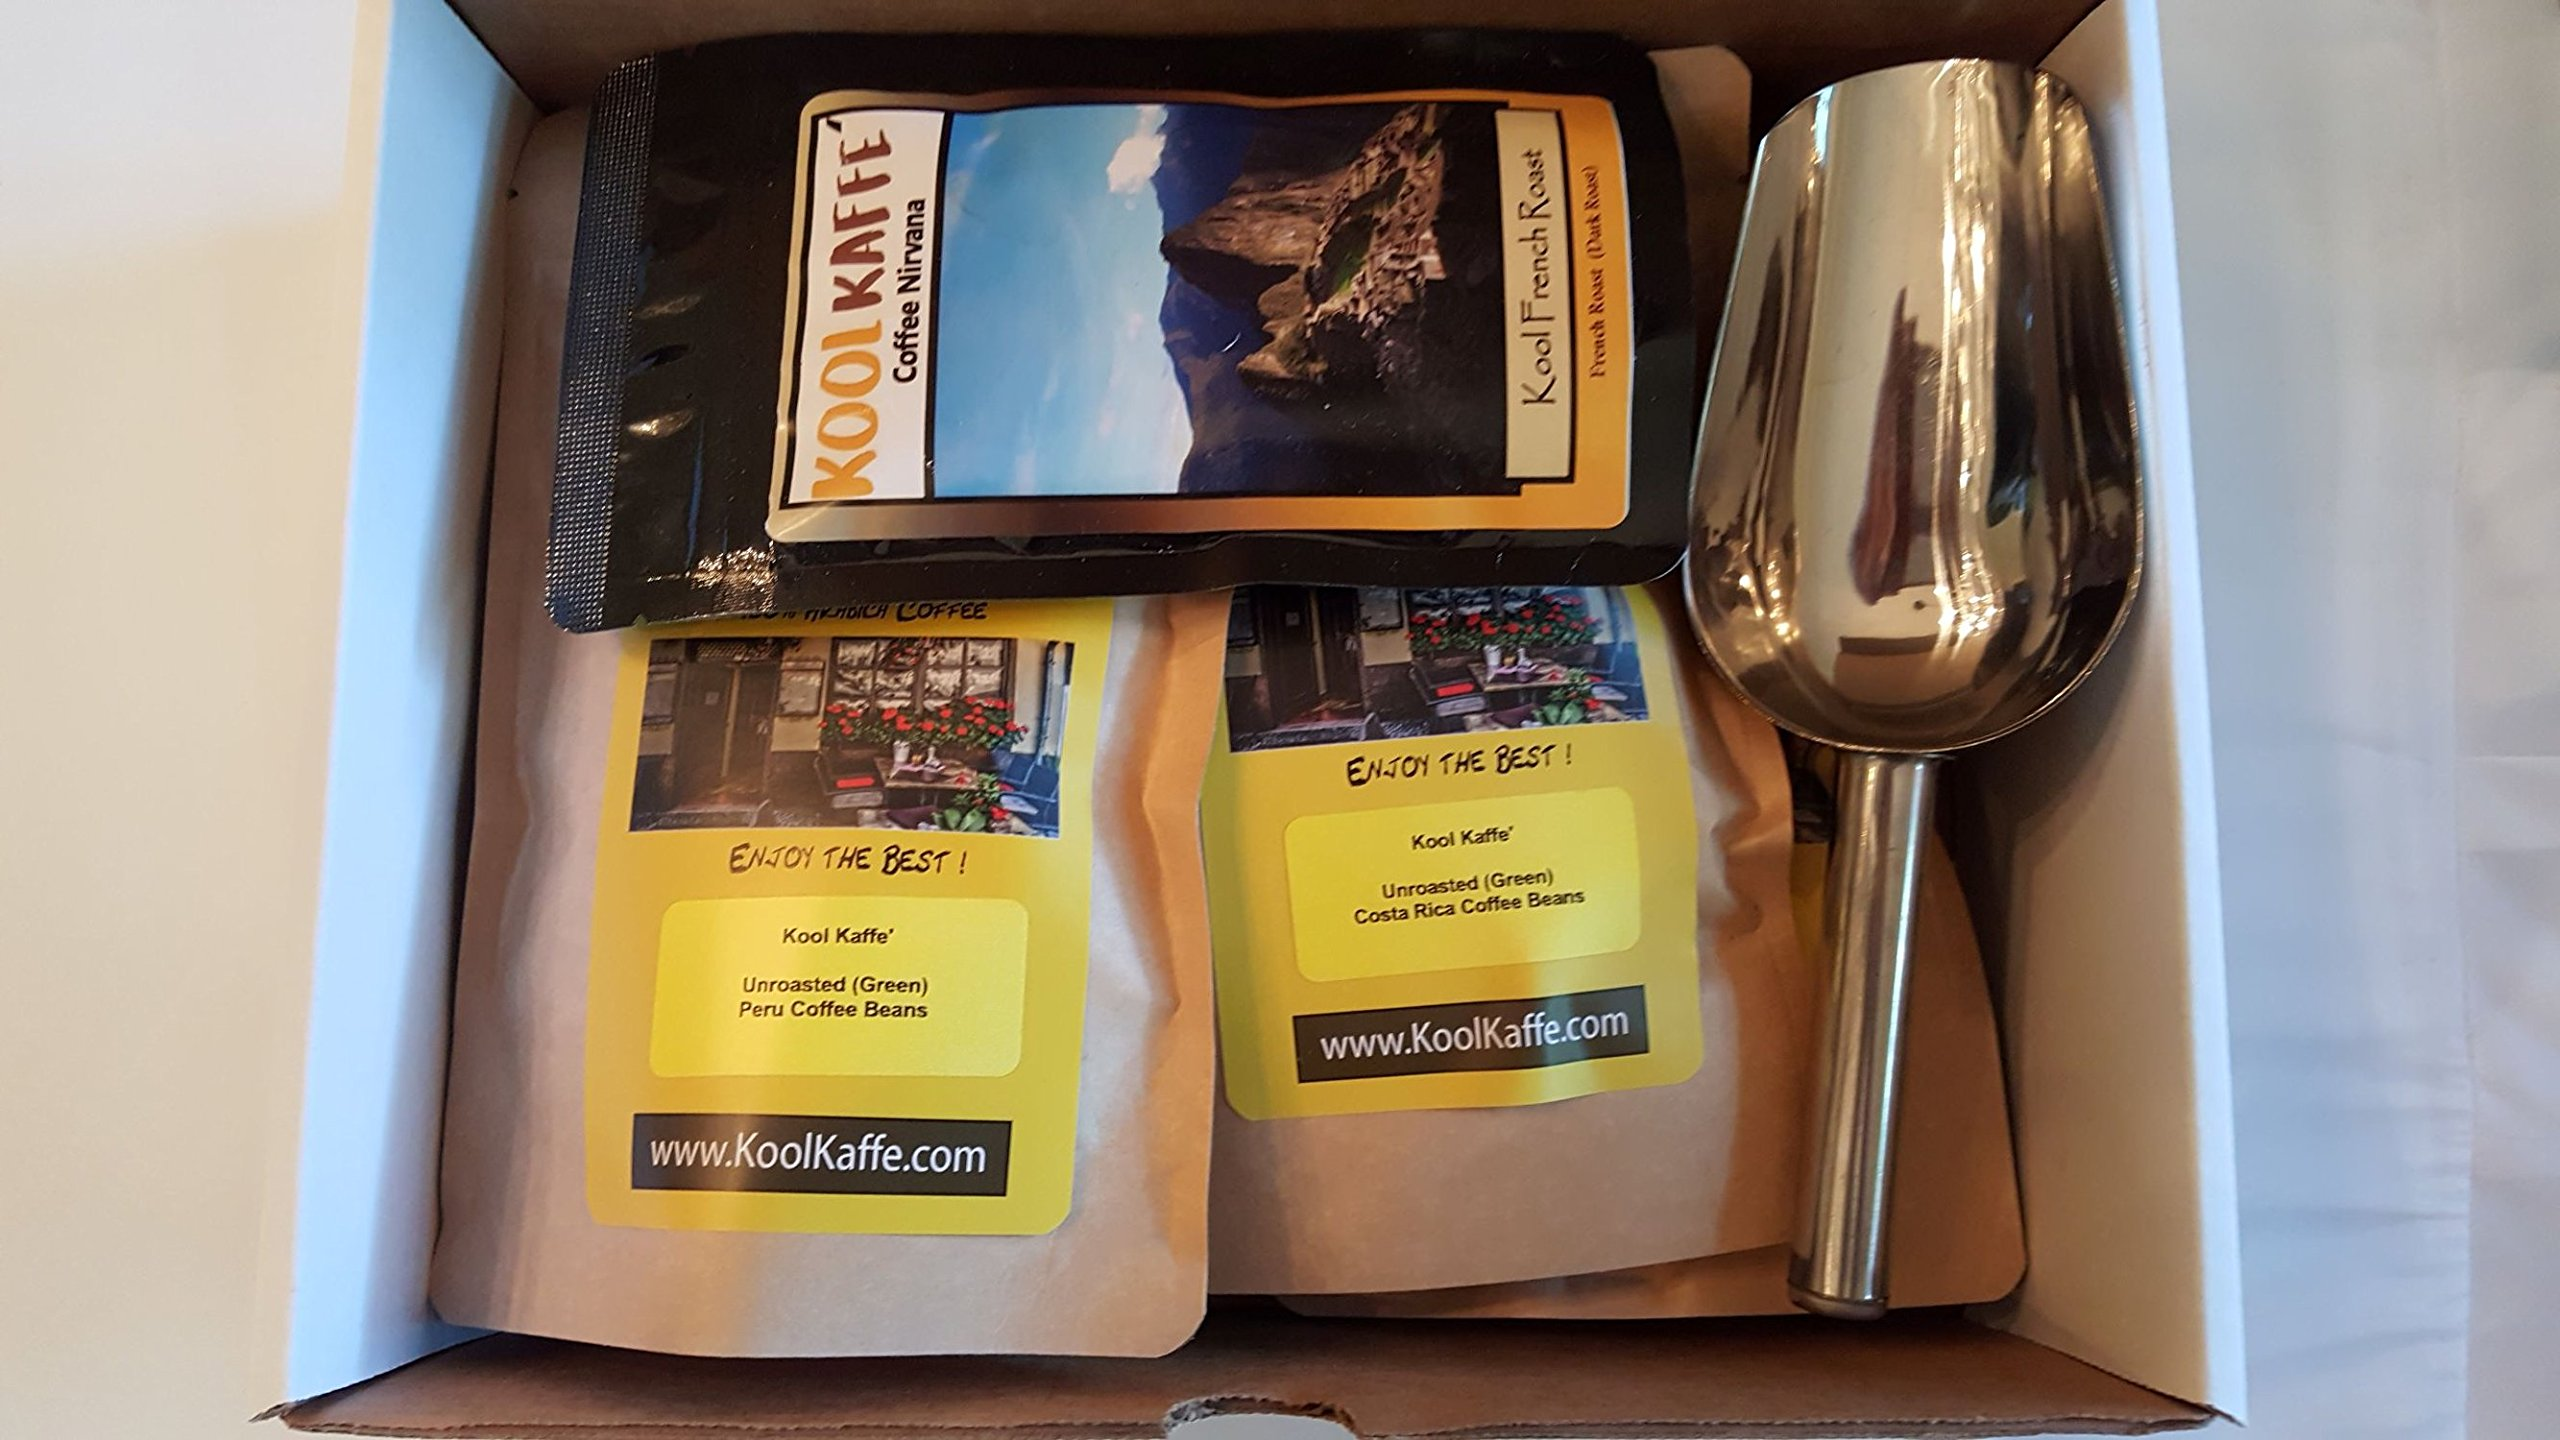 Kool Kaffe' Coffee Lovers Roasters Lab, 4 different 1/2 pound packages of UnRoasted Beans in Box, (Costa Rica, Kenya, Peru, Sumatra) with Coffee Scoop by Kool Kaffe'